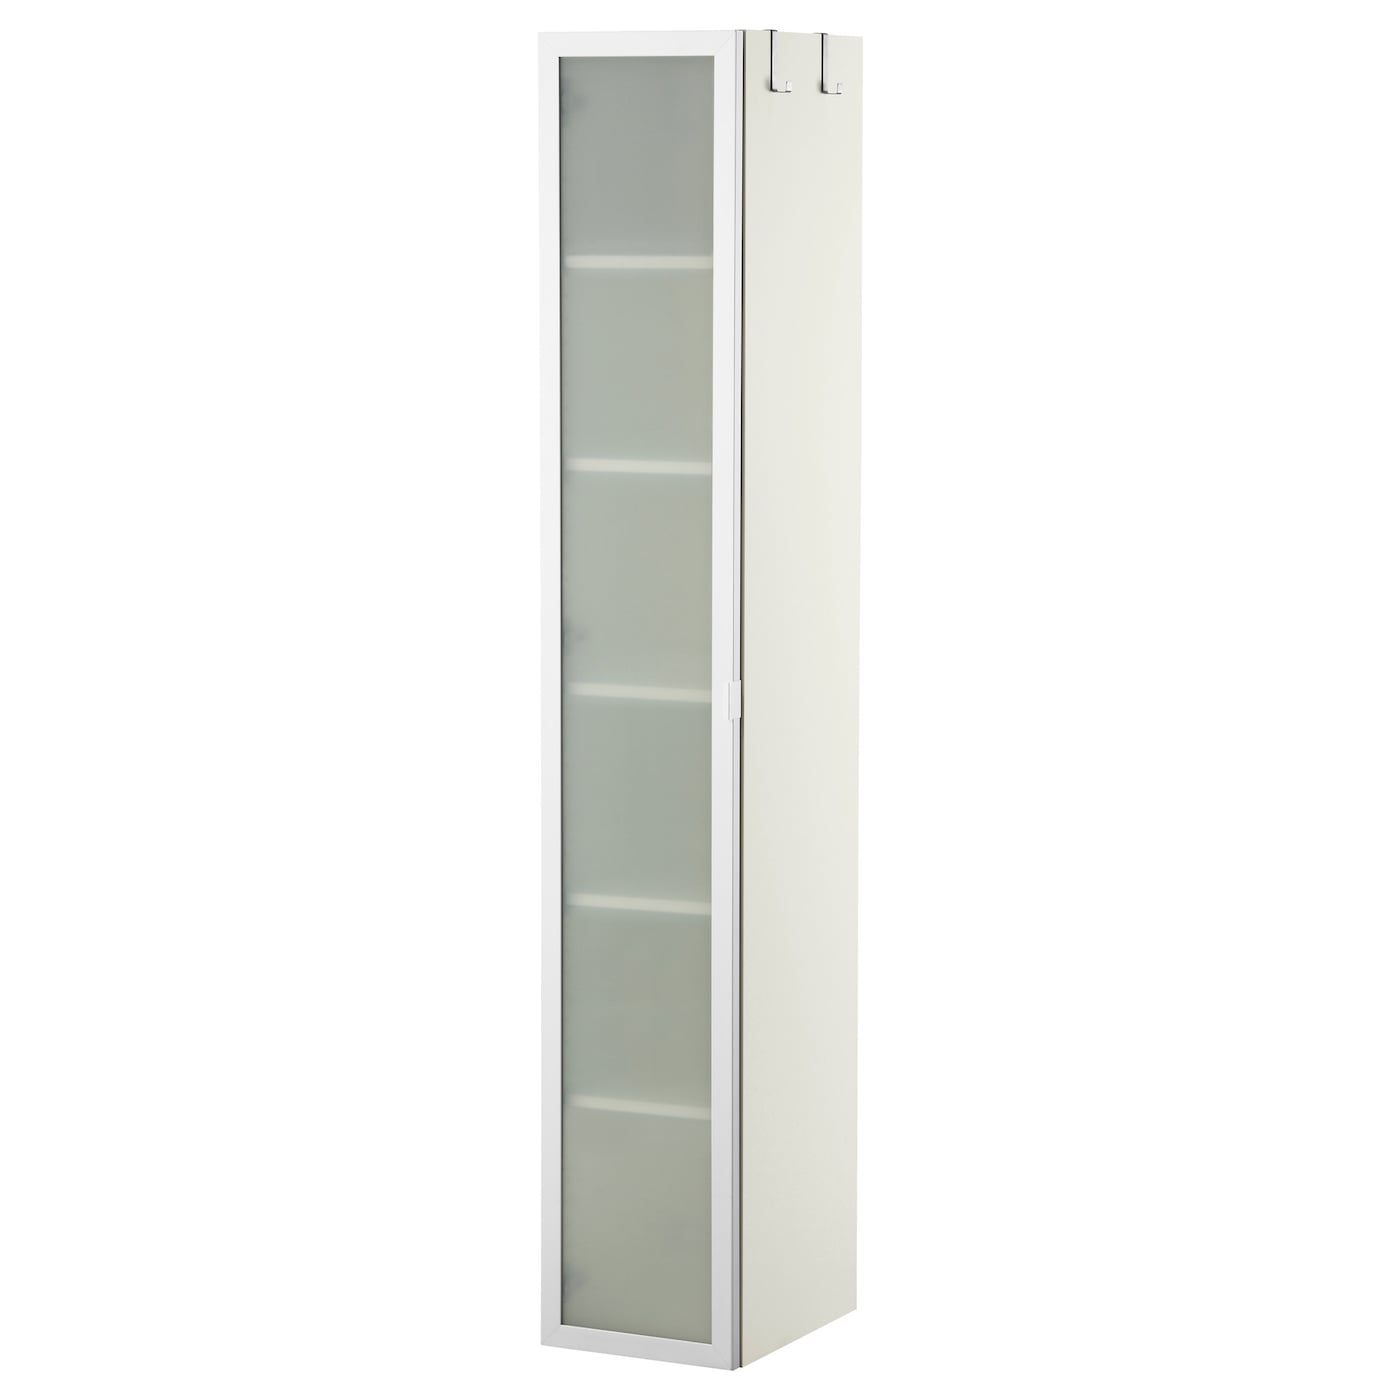 Lill ngen high cabinet white aluminium 30x38x179 cm ikea for Furniture 30cm deep